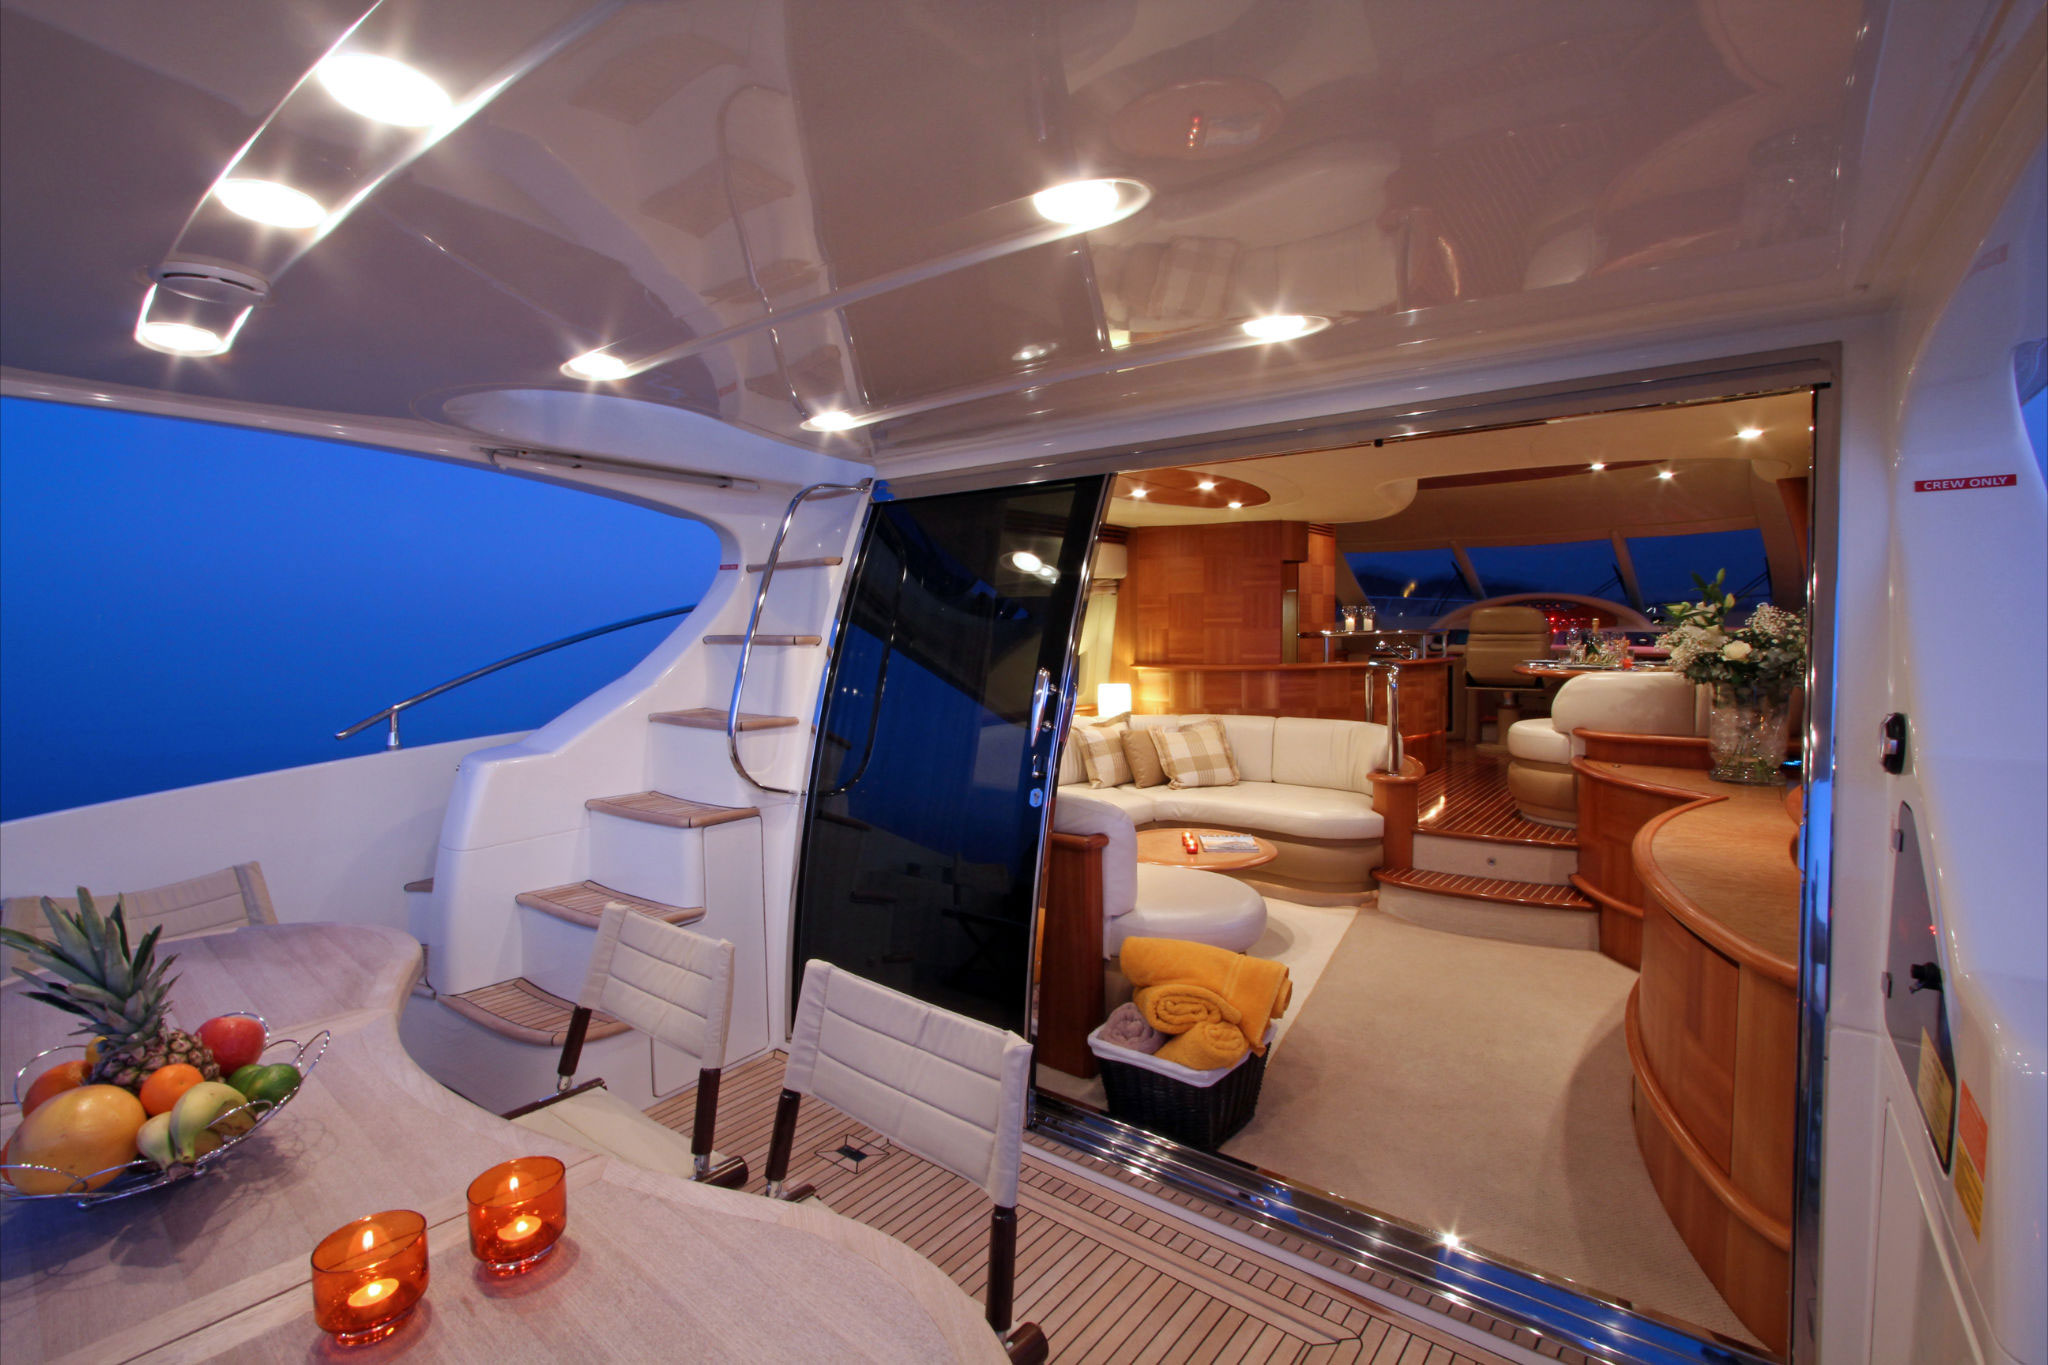 Location de yacht en Corse